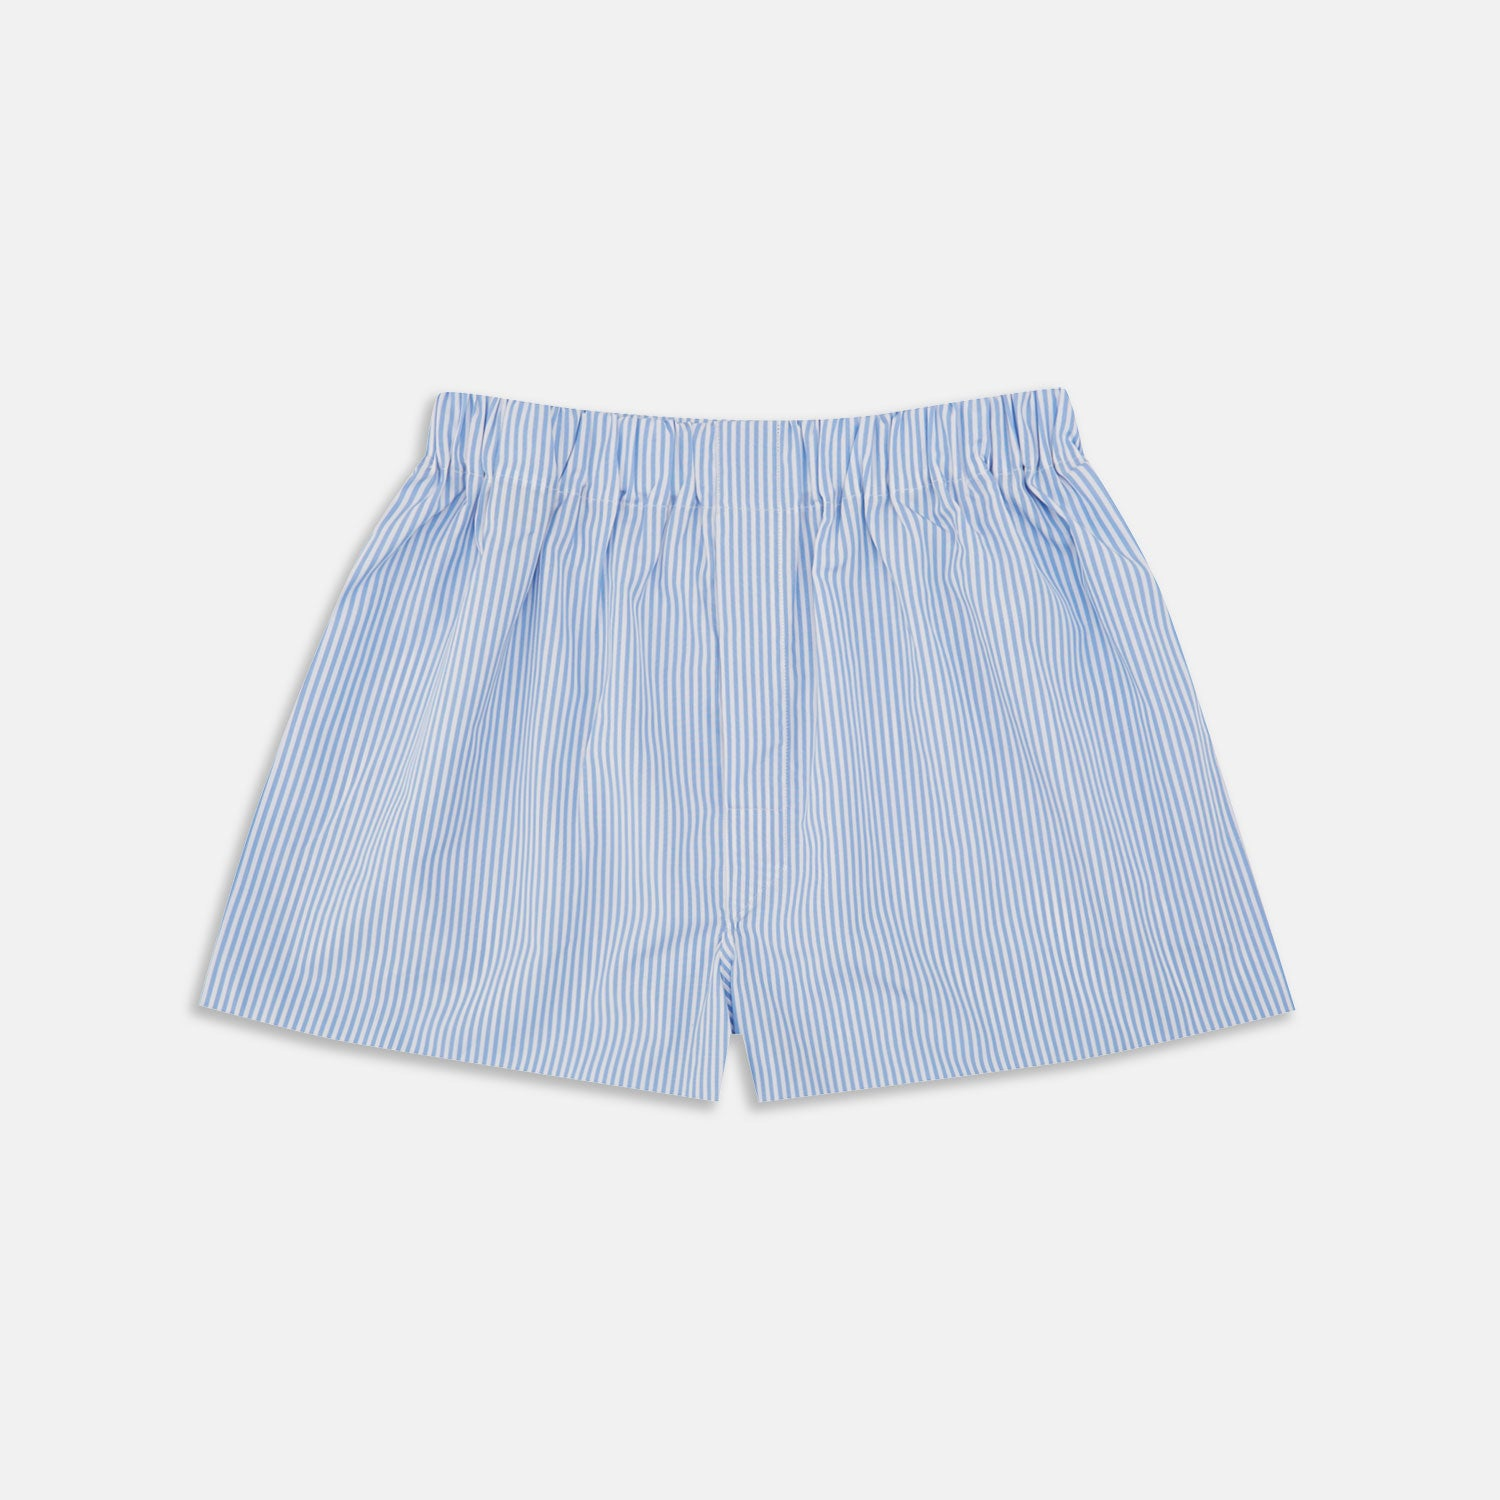 Light Blue Bengal Stripe Cotton Boxer Shorts